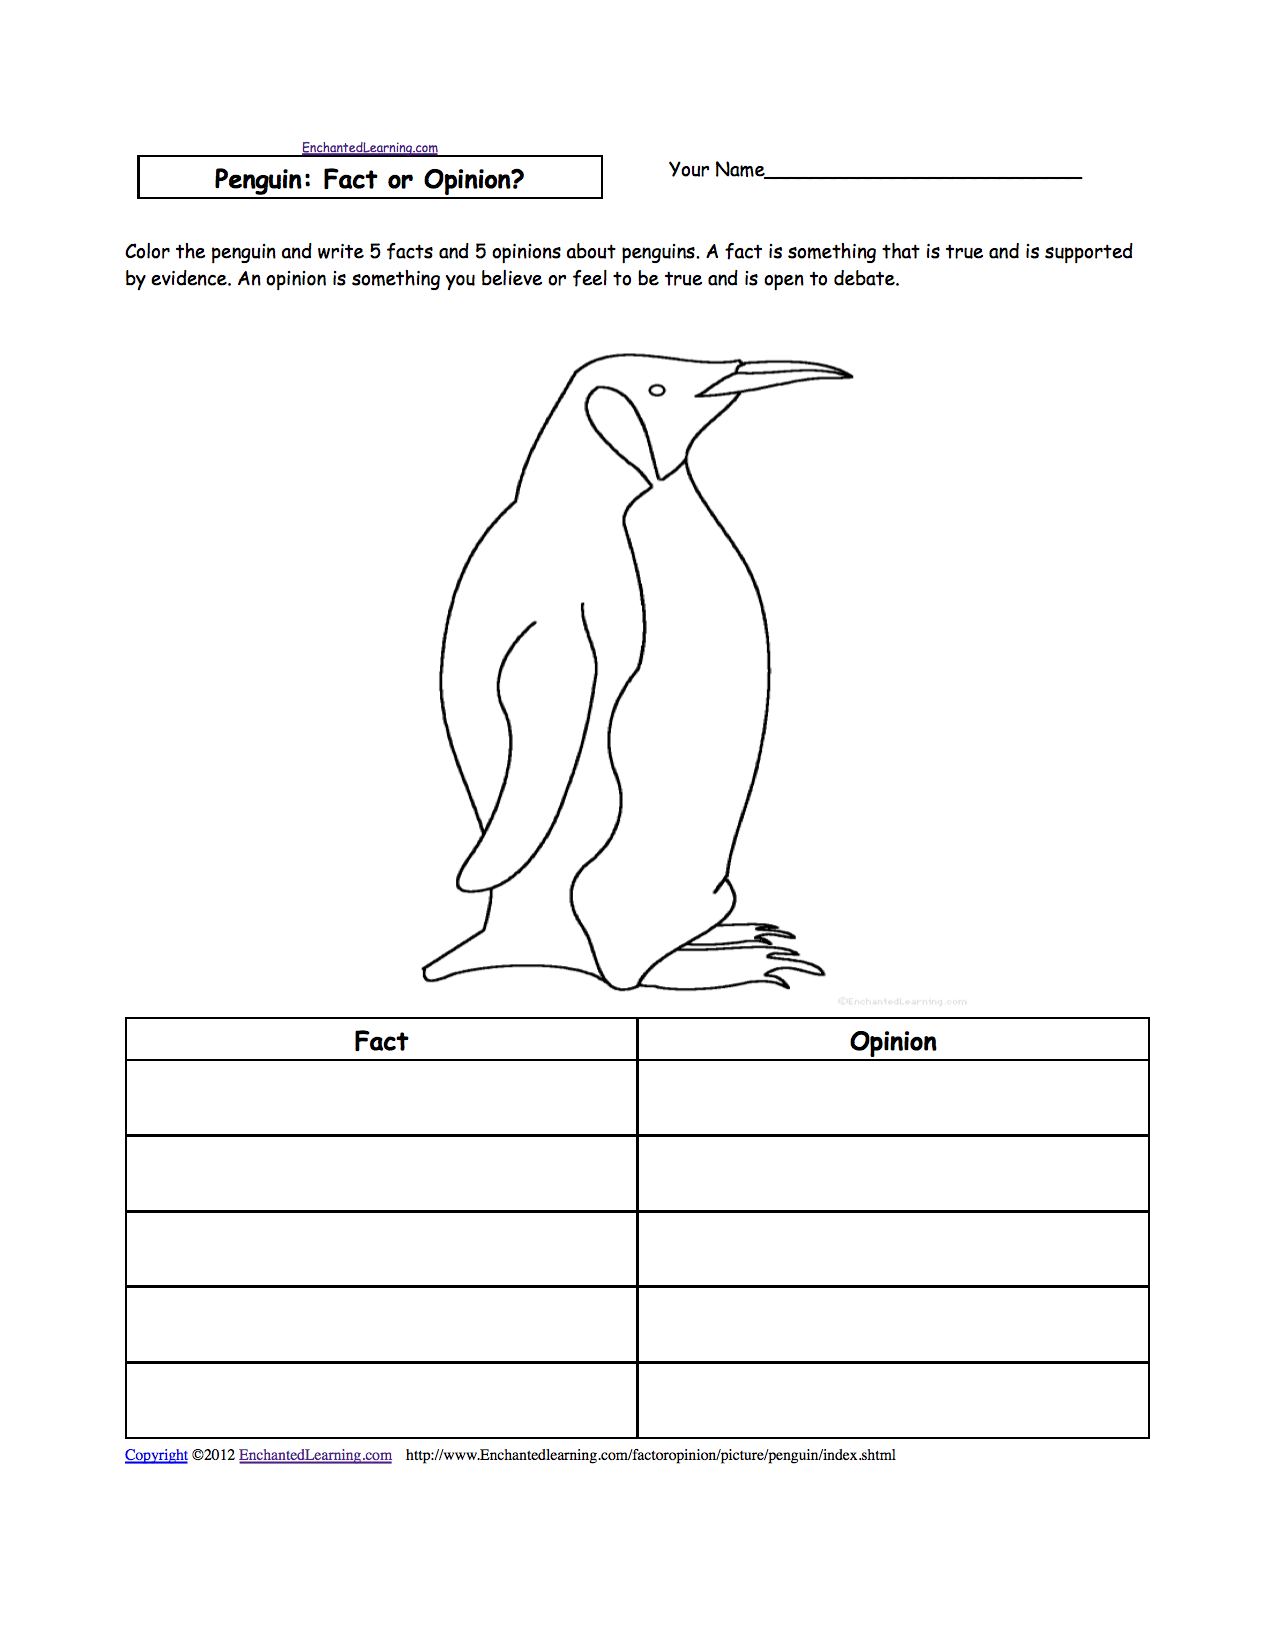 penguins at com penguin fact or opinion